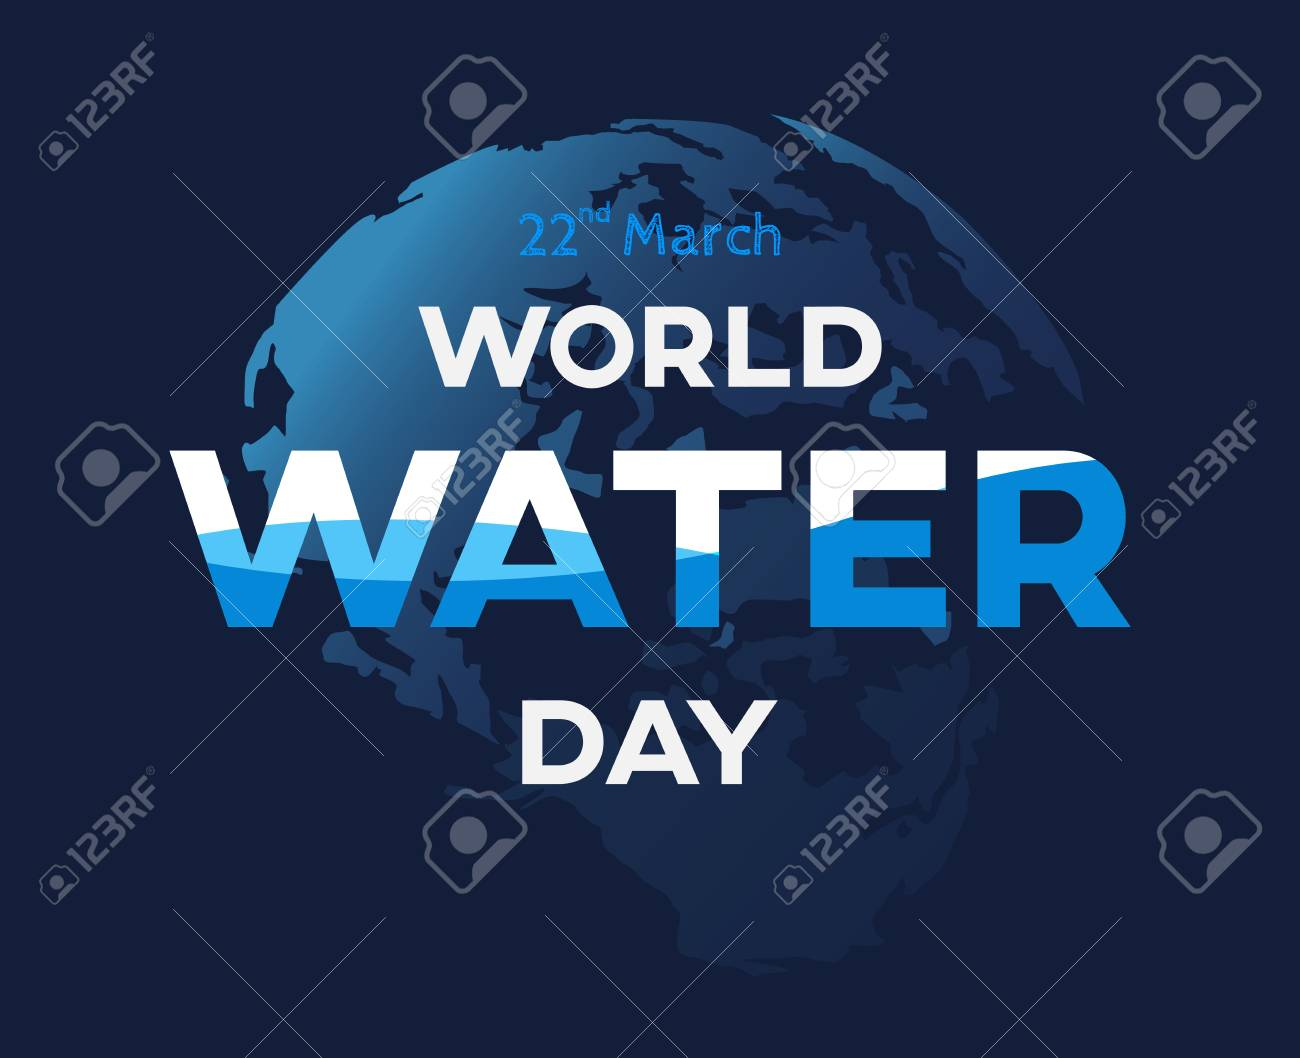 world water day background greeting card or poster for campaign